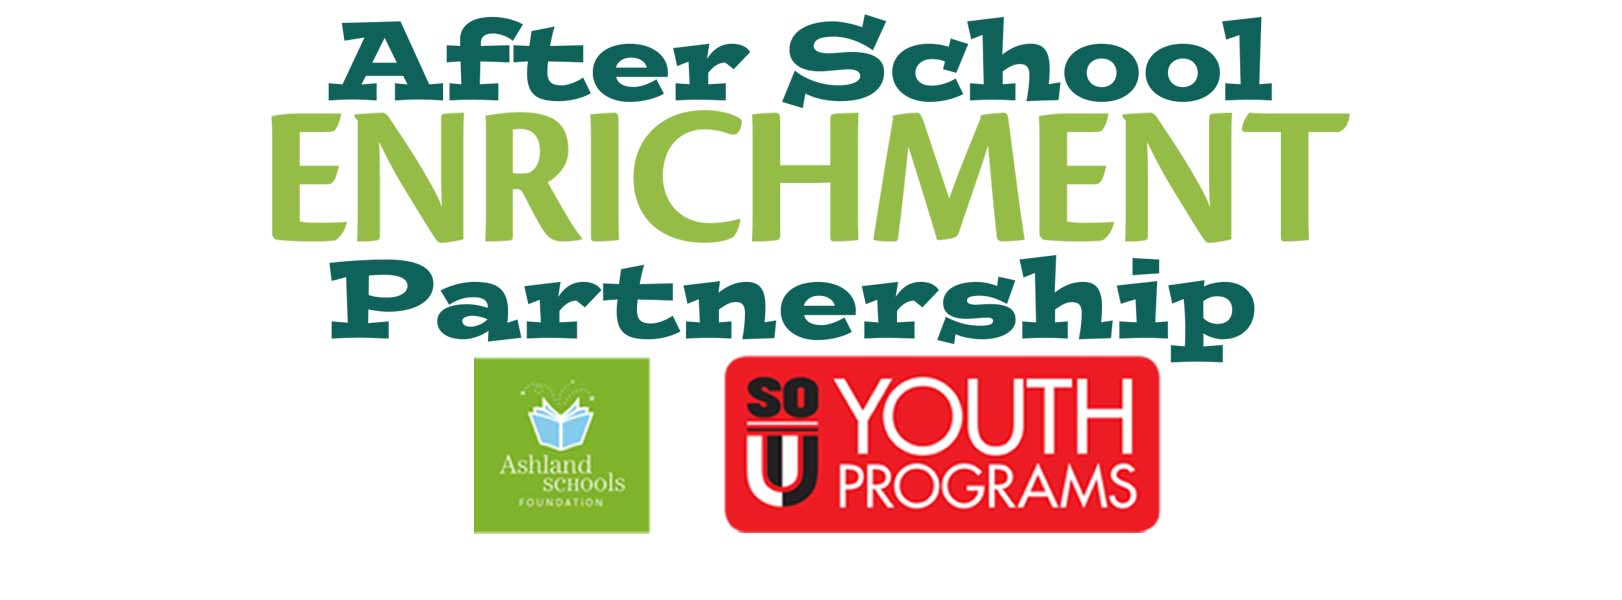 After School Enrichment Partnership Logo